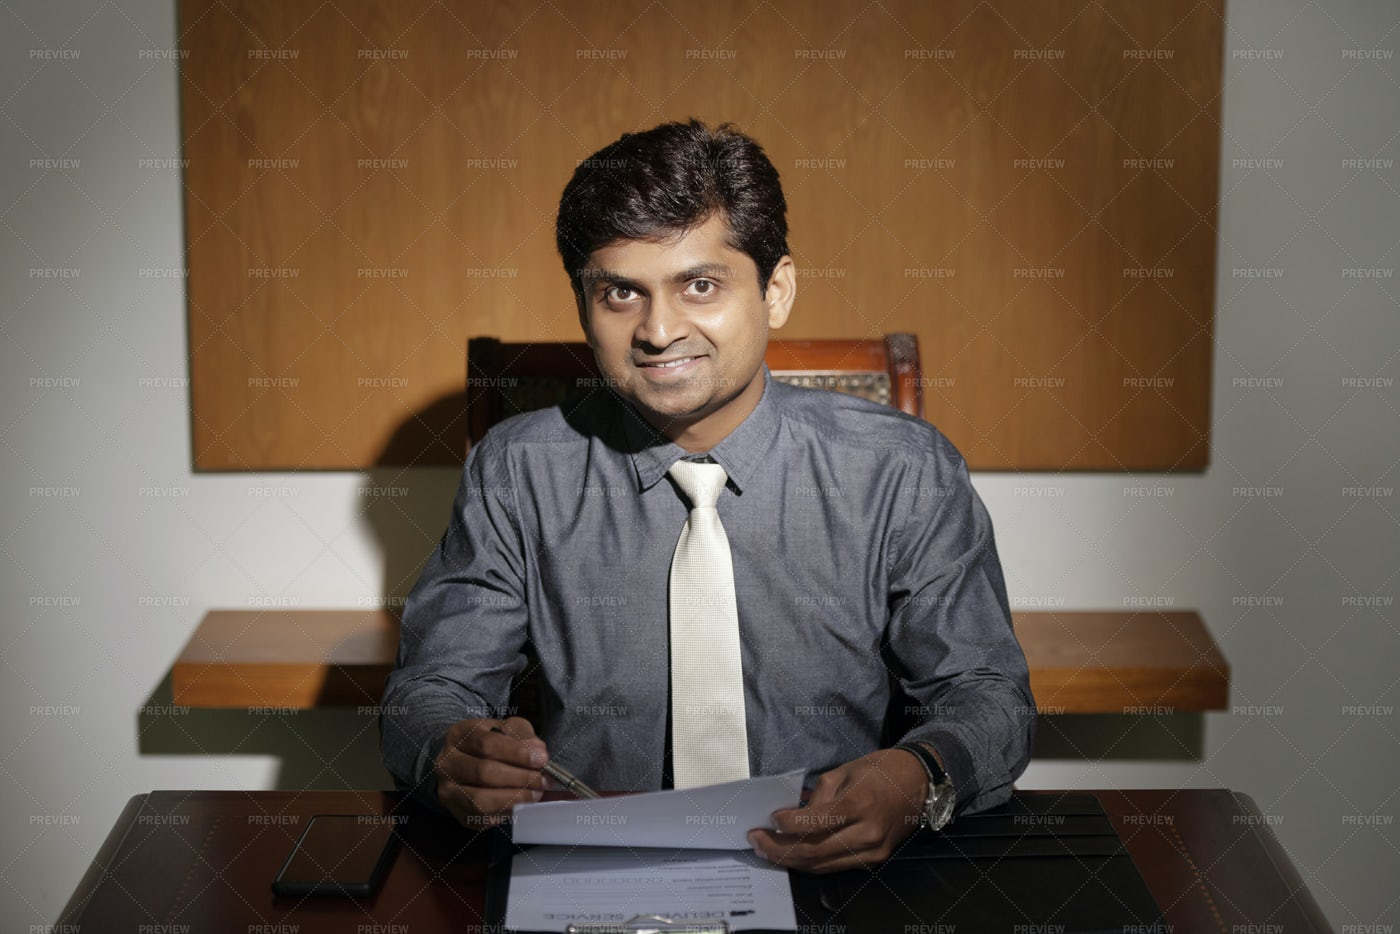 Smiling Businessman Working With: Stock Photos